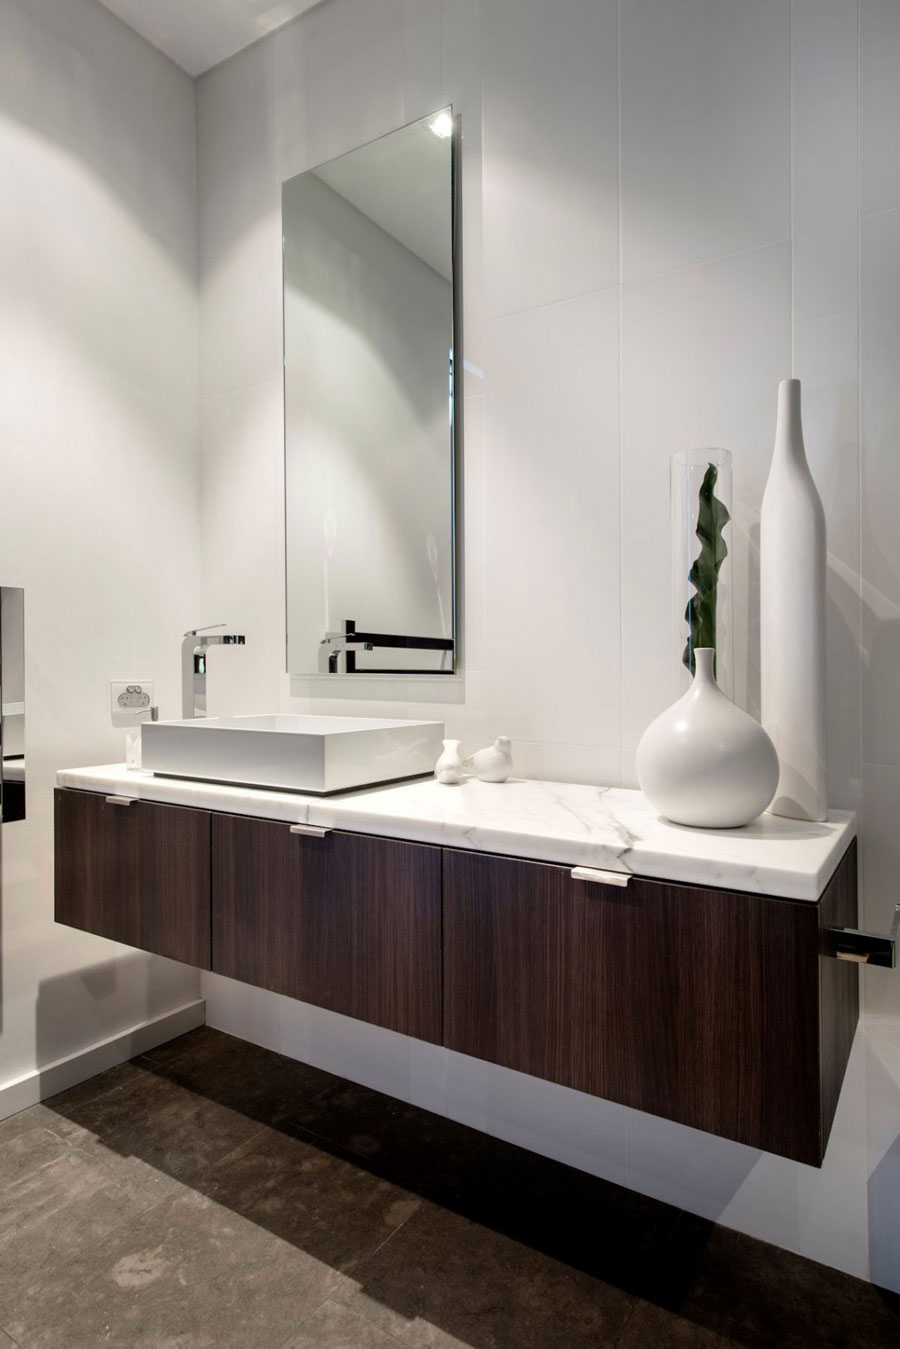 12 A stylish and modern home in Australia designed by Urbane Projects